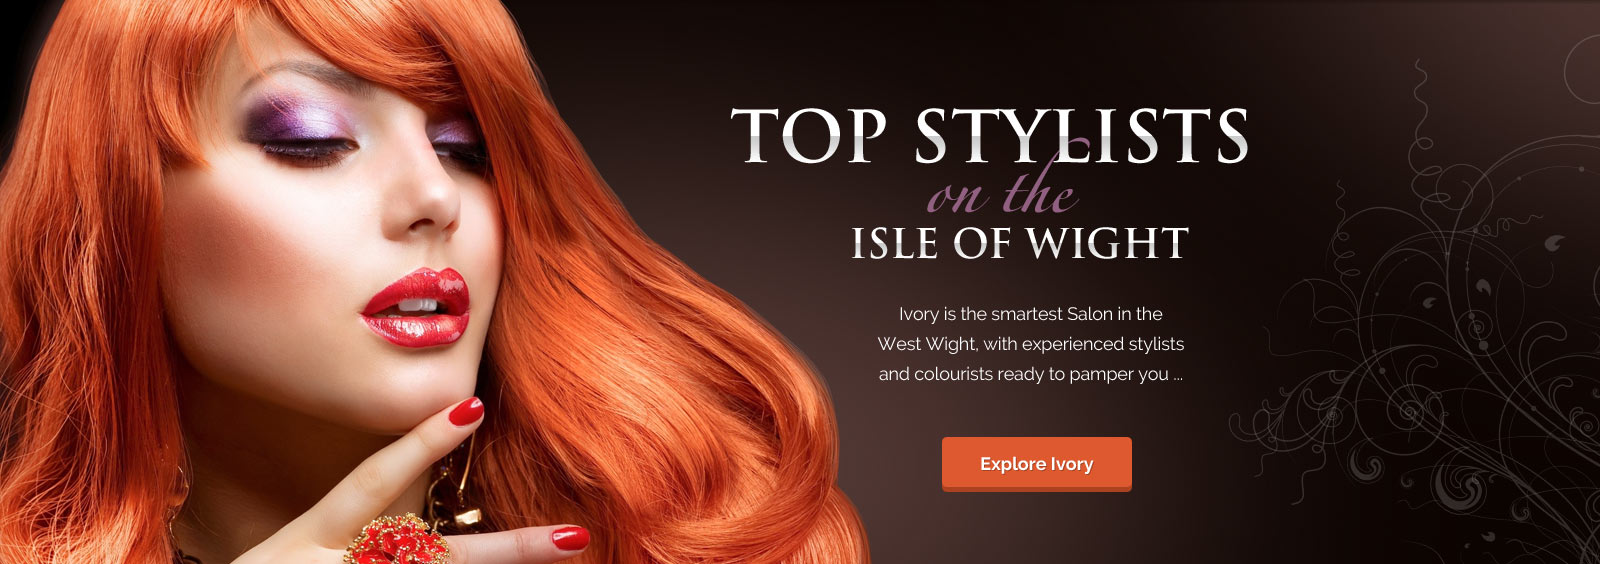 The smartest salon in the West Wight, with experienced stylists and colourists ready to pamper you ... Explore Ivory